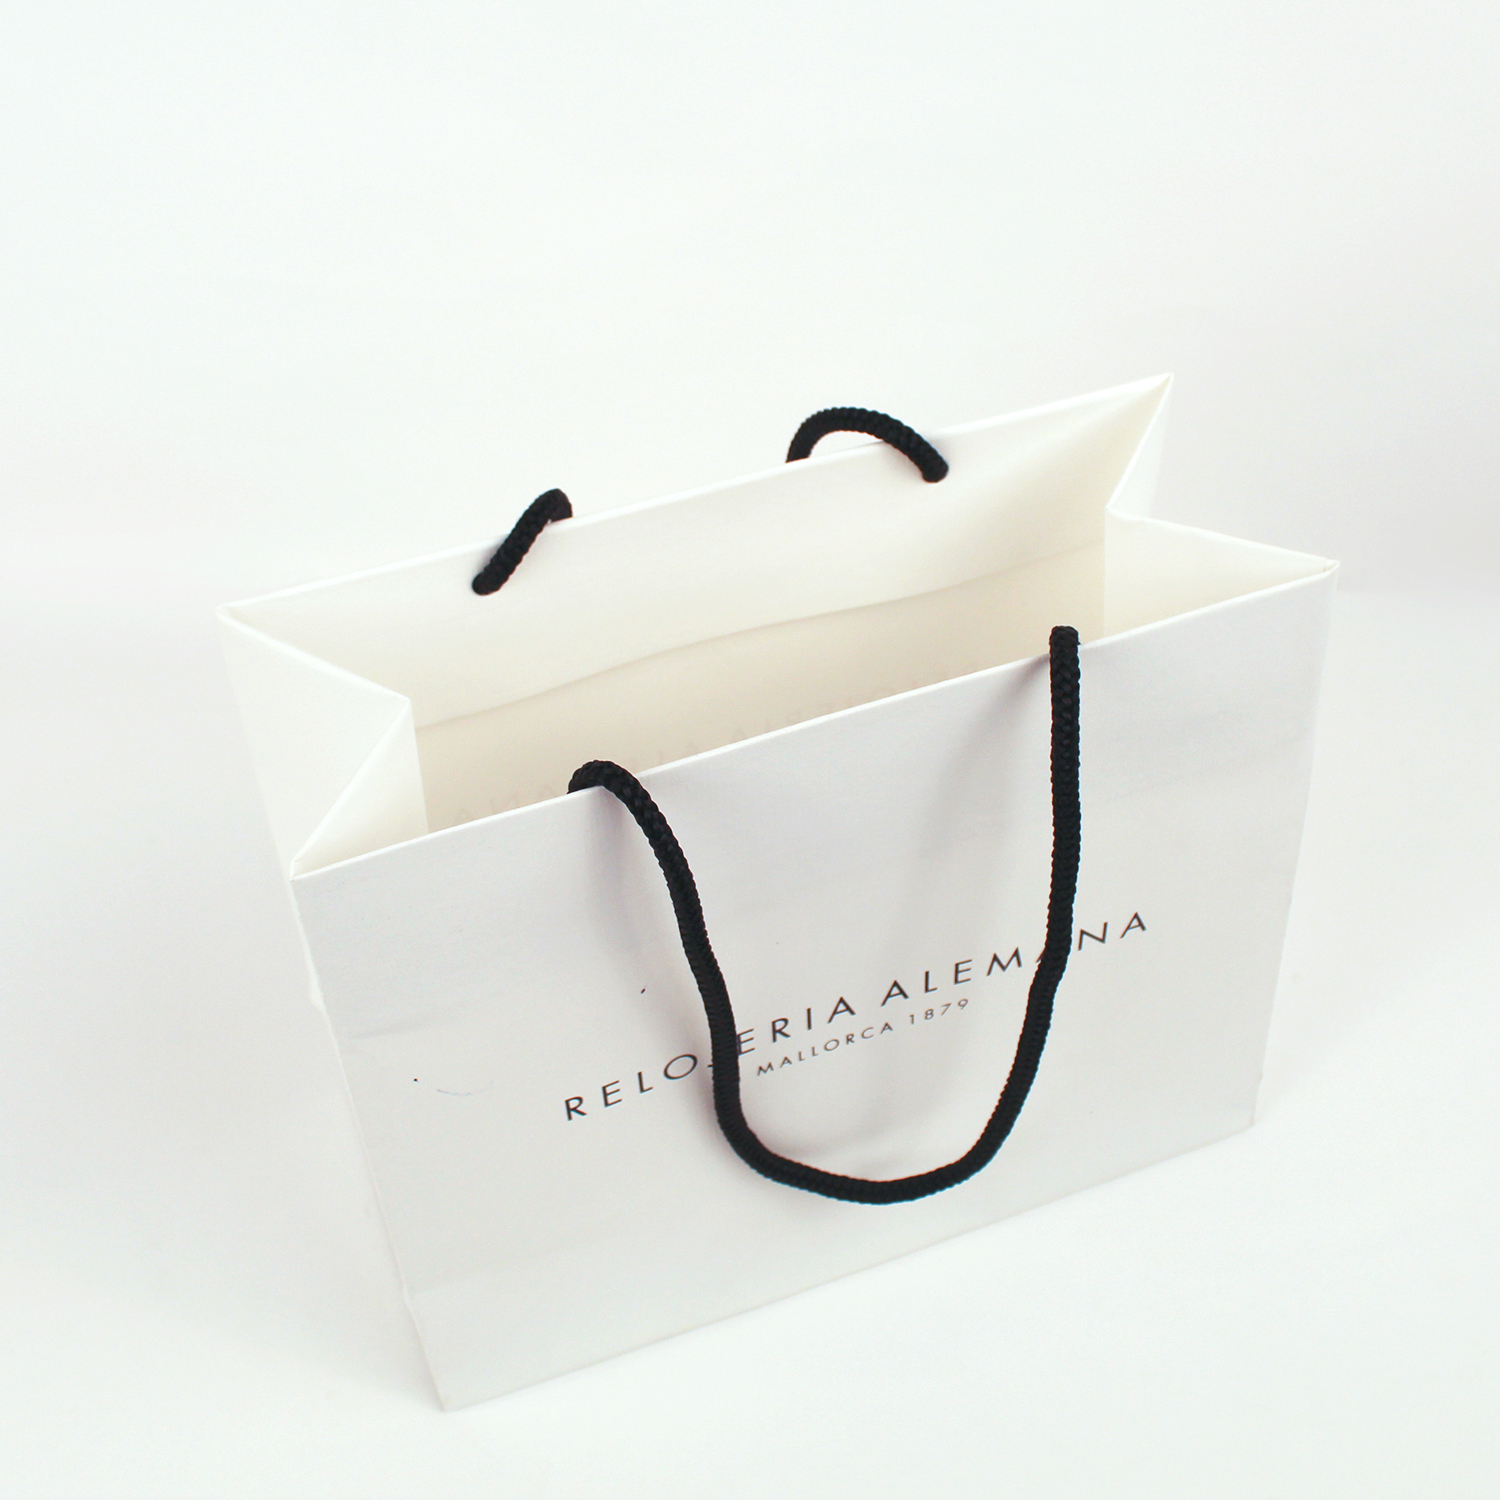 1 | Rejoleria Alemana | Shopping bag